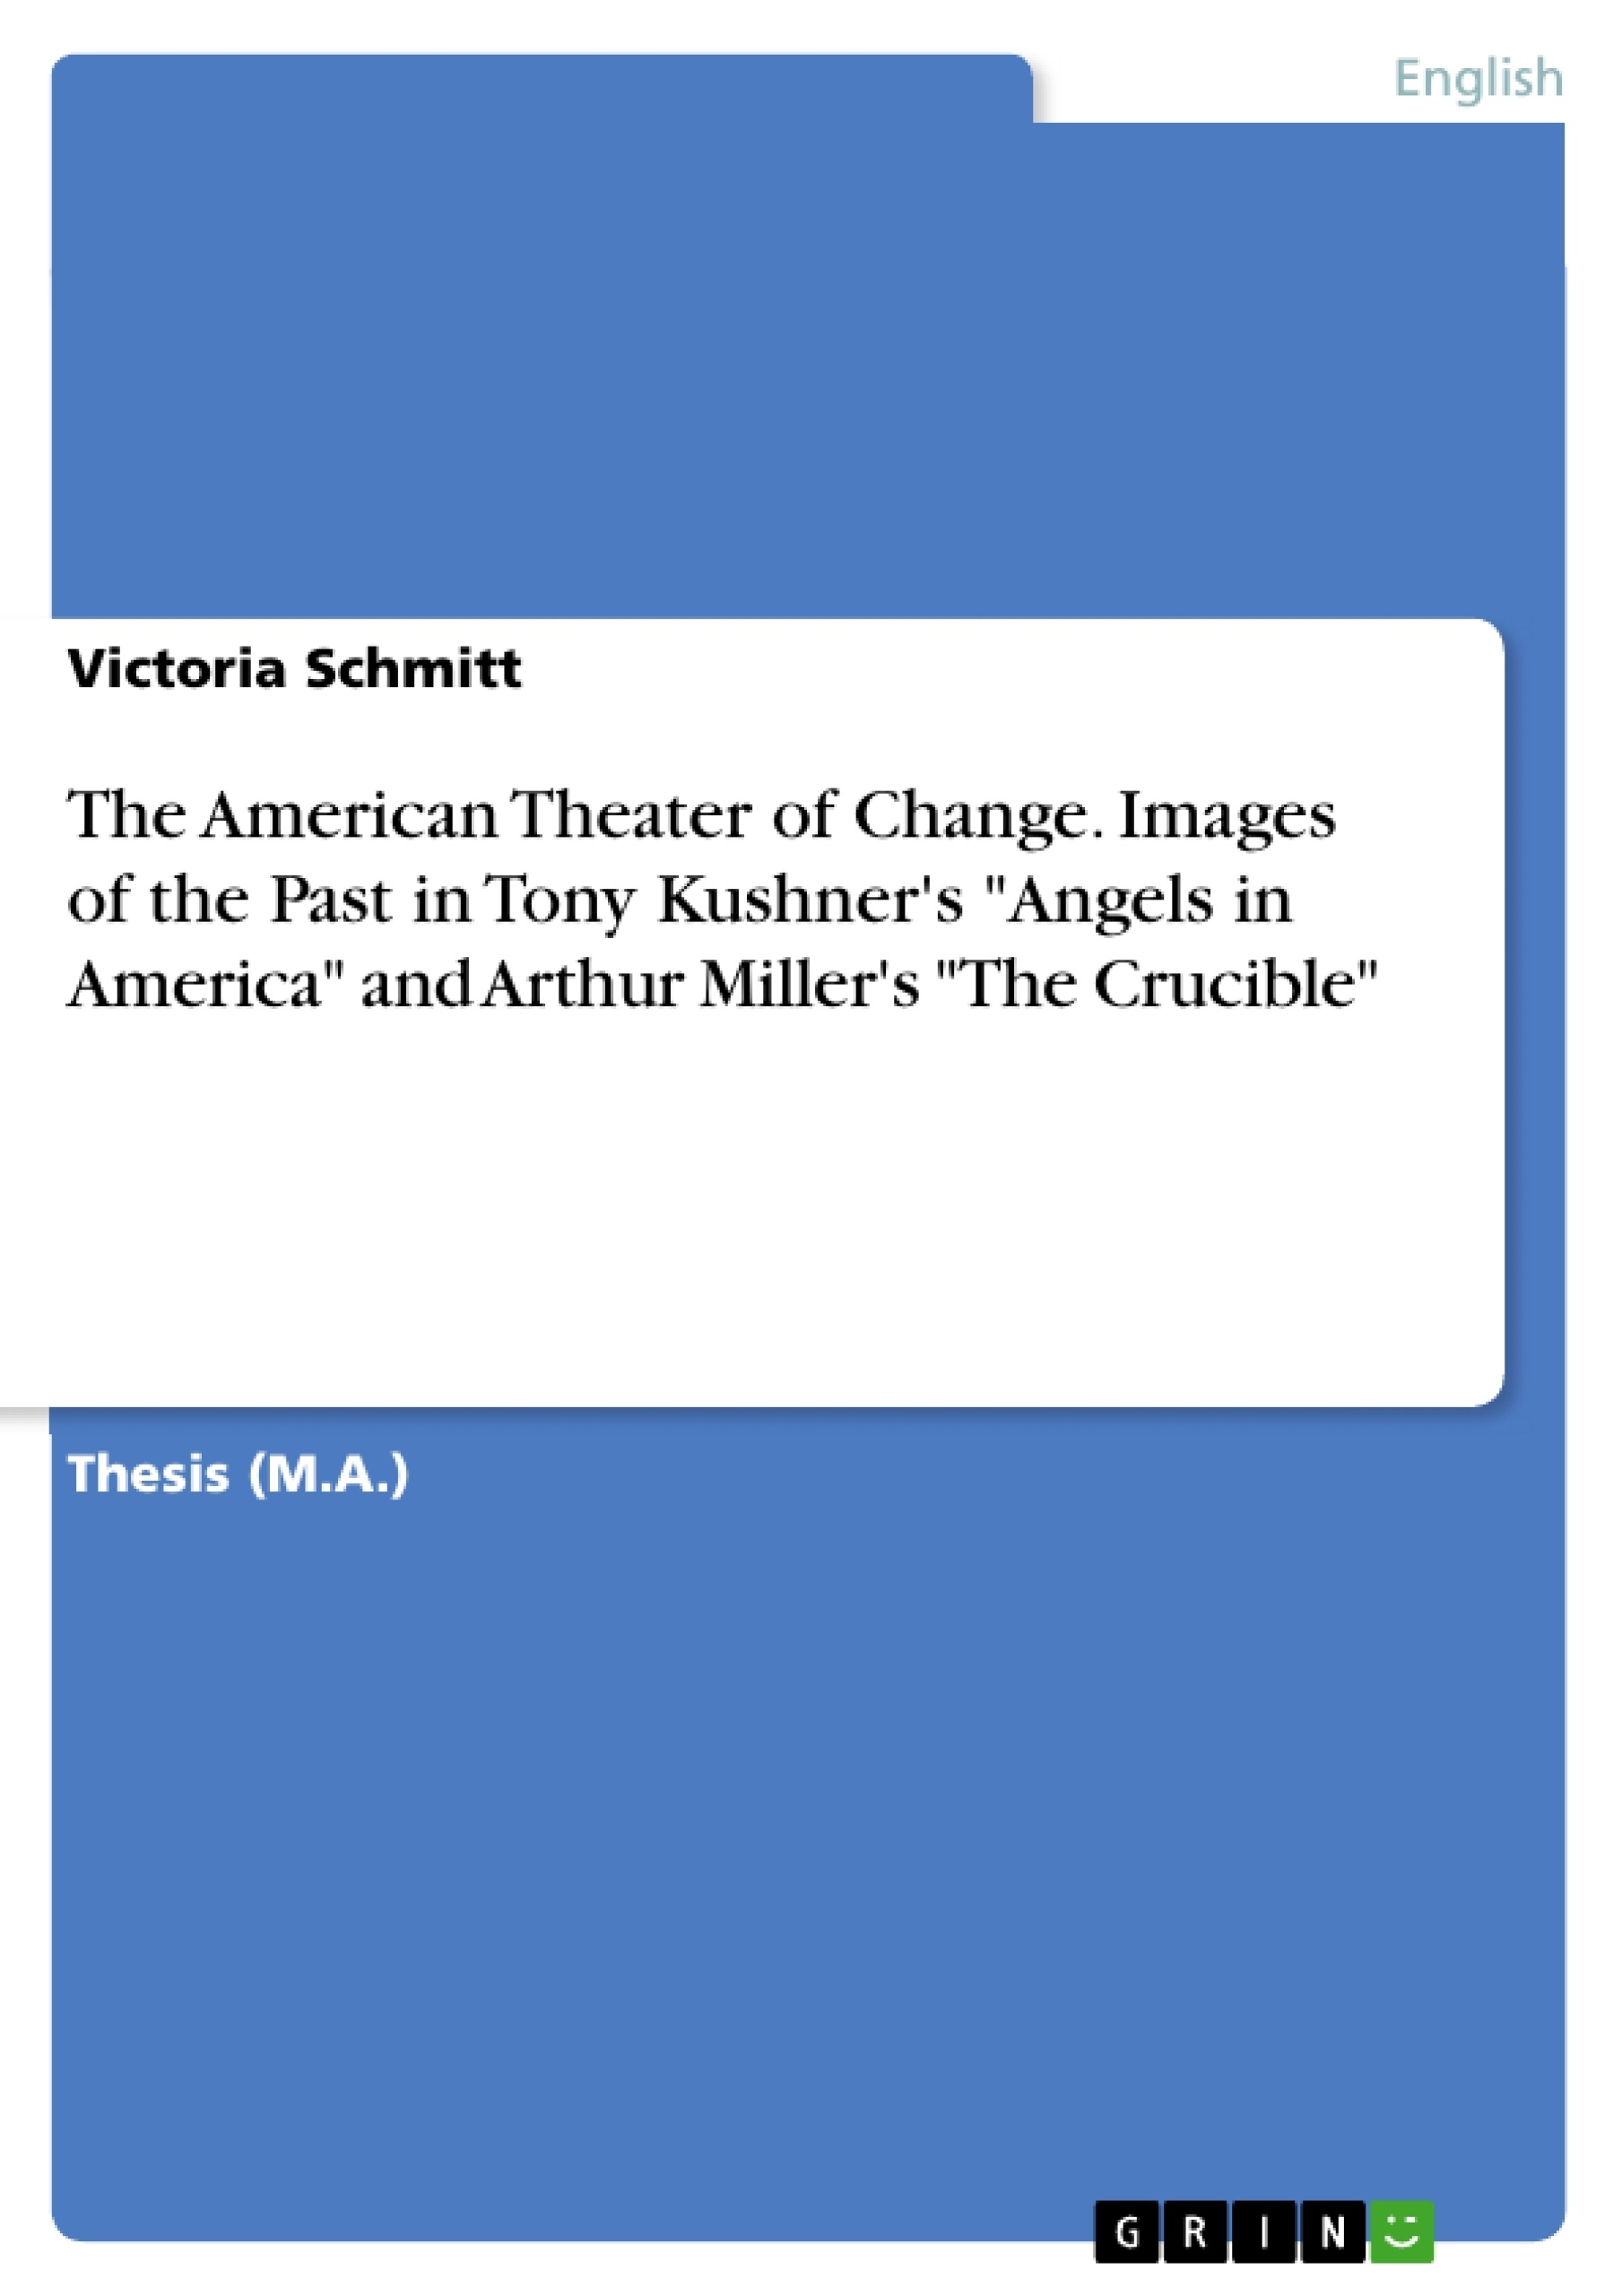 The American Theater Of Change Images Of The Past In Tony